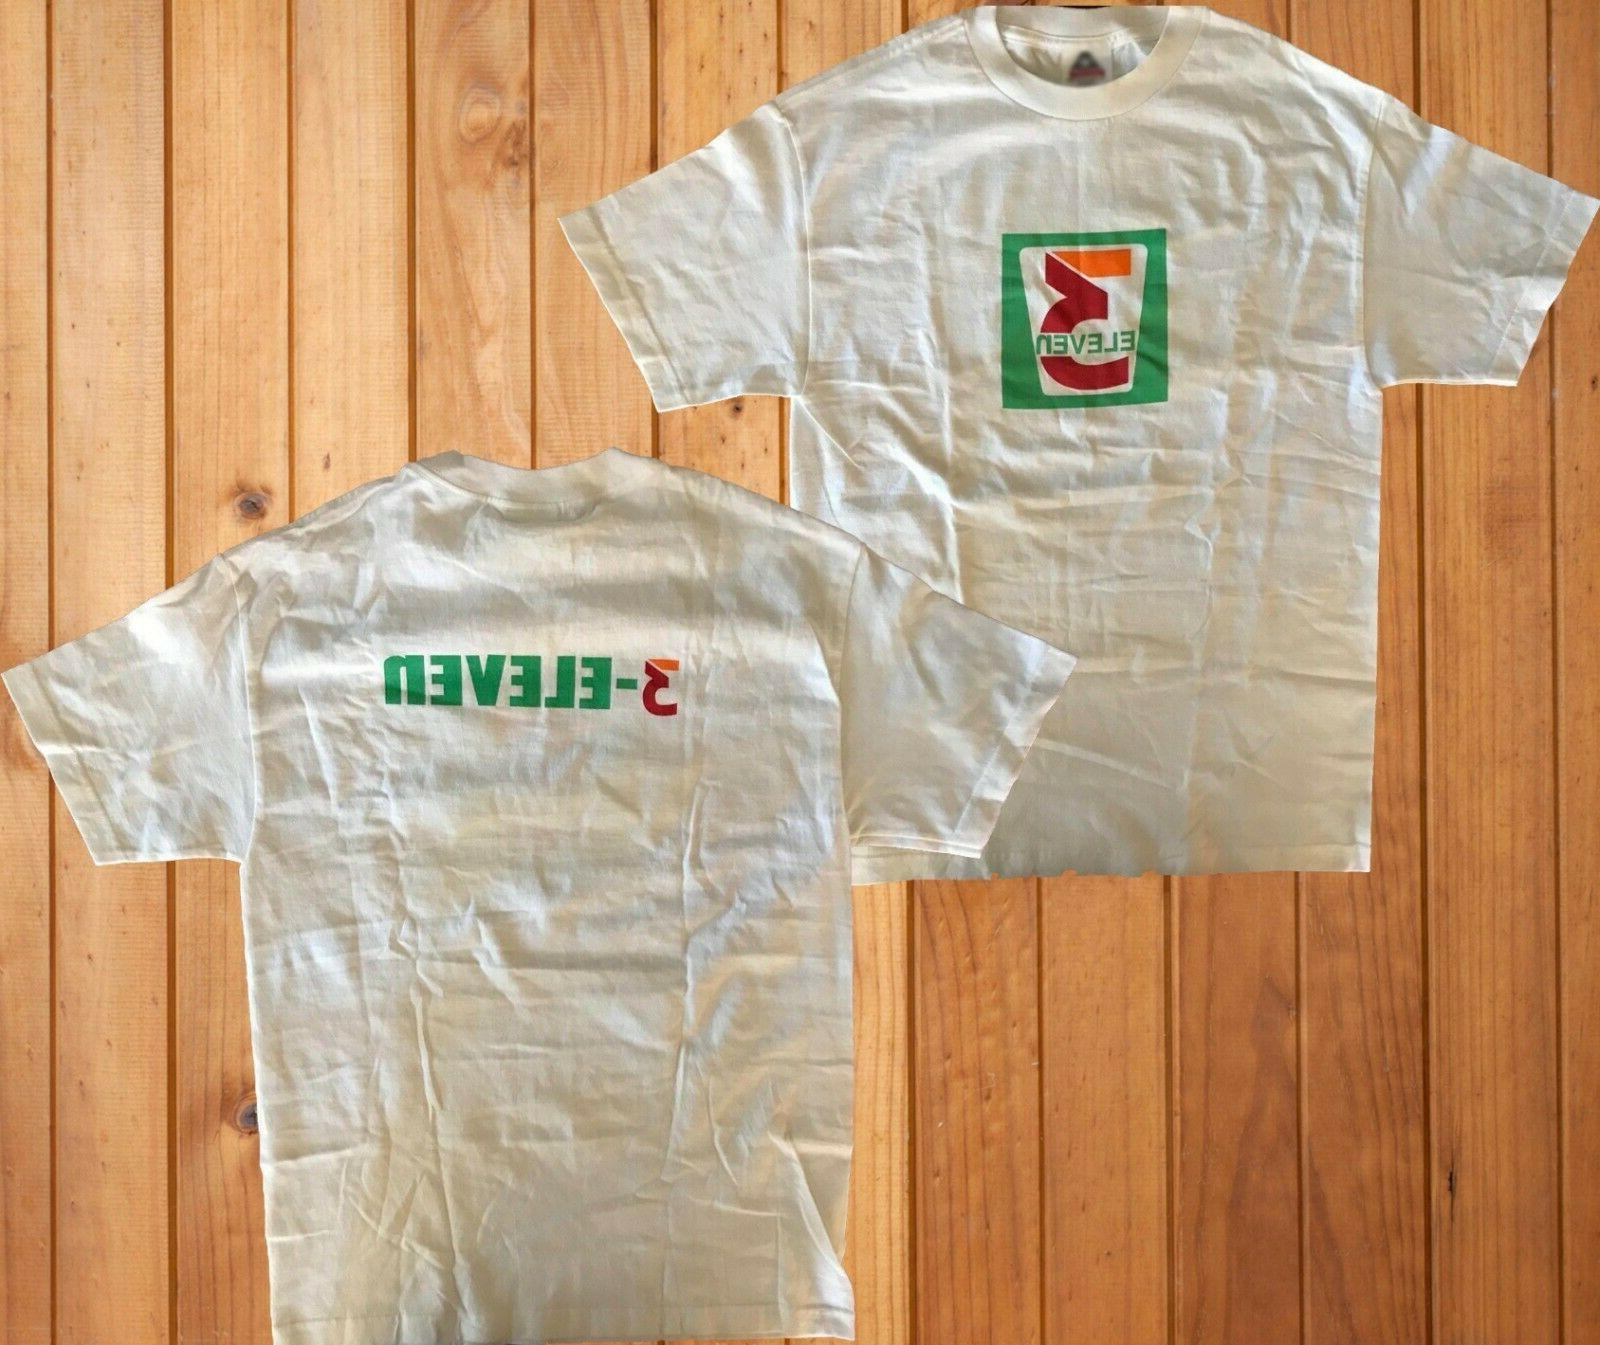 VINTAGE SUPER RARE 311 7-ELEVEN BAND TOUR SHIRT 90s ROCK T-S